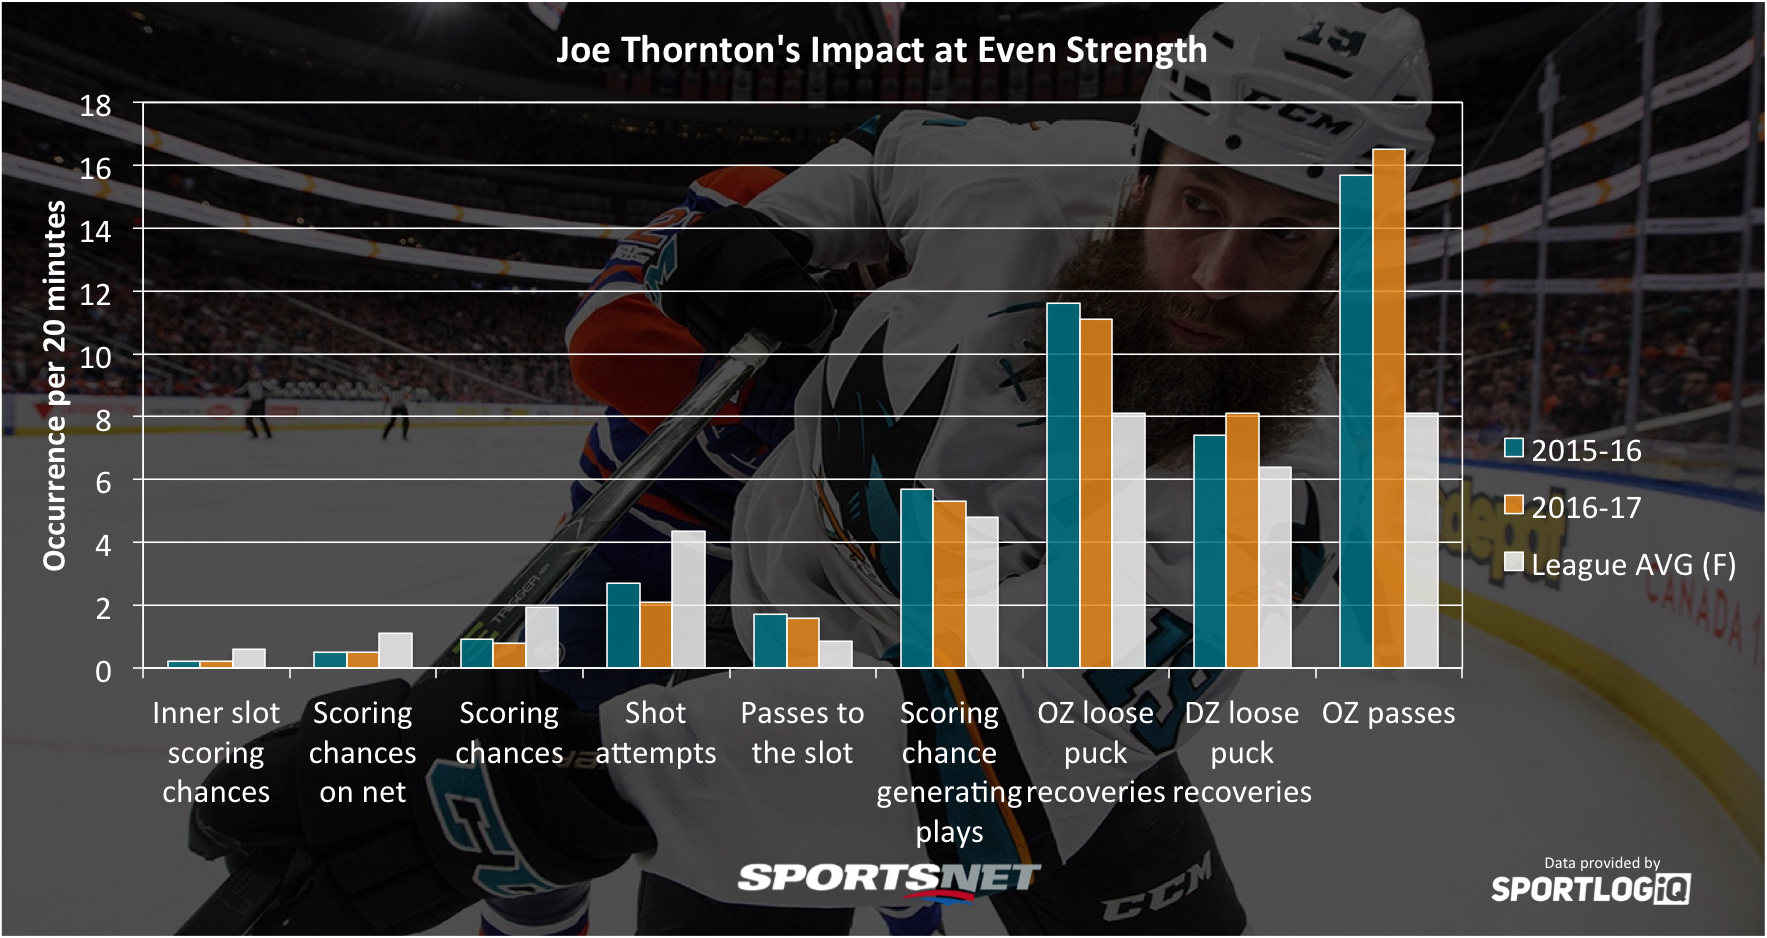 National Hockey League free agency: Joe Thornton reportedly re-signs with Sharks